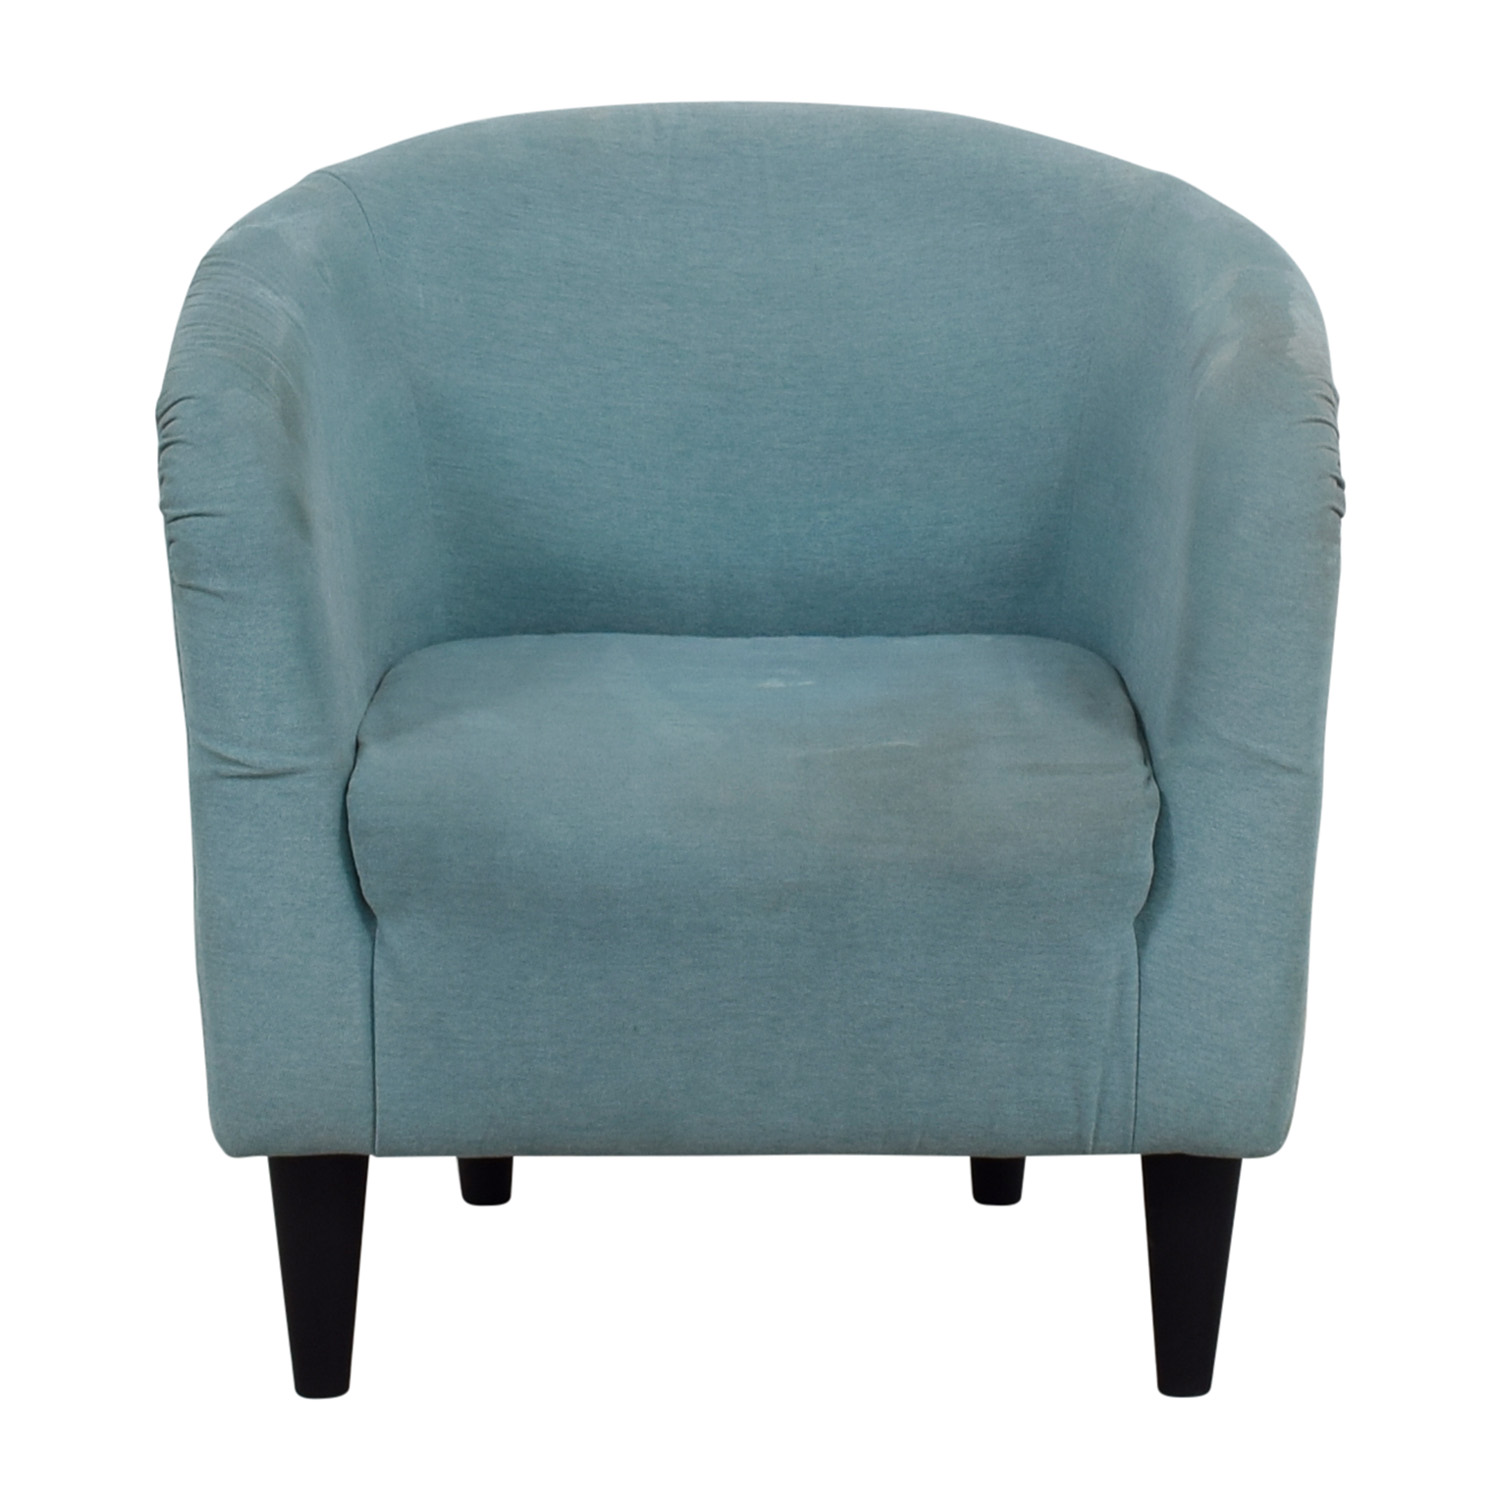 Wayfair Wayfair Sky Blue Accent Chair used